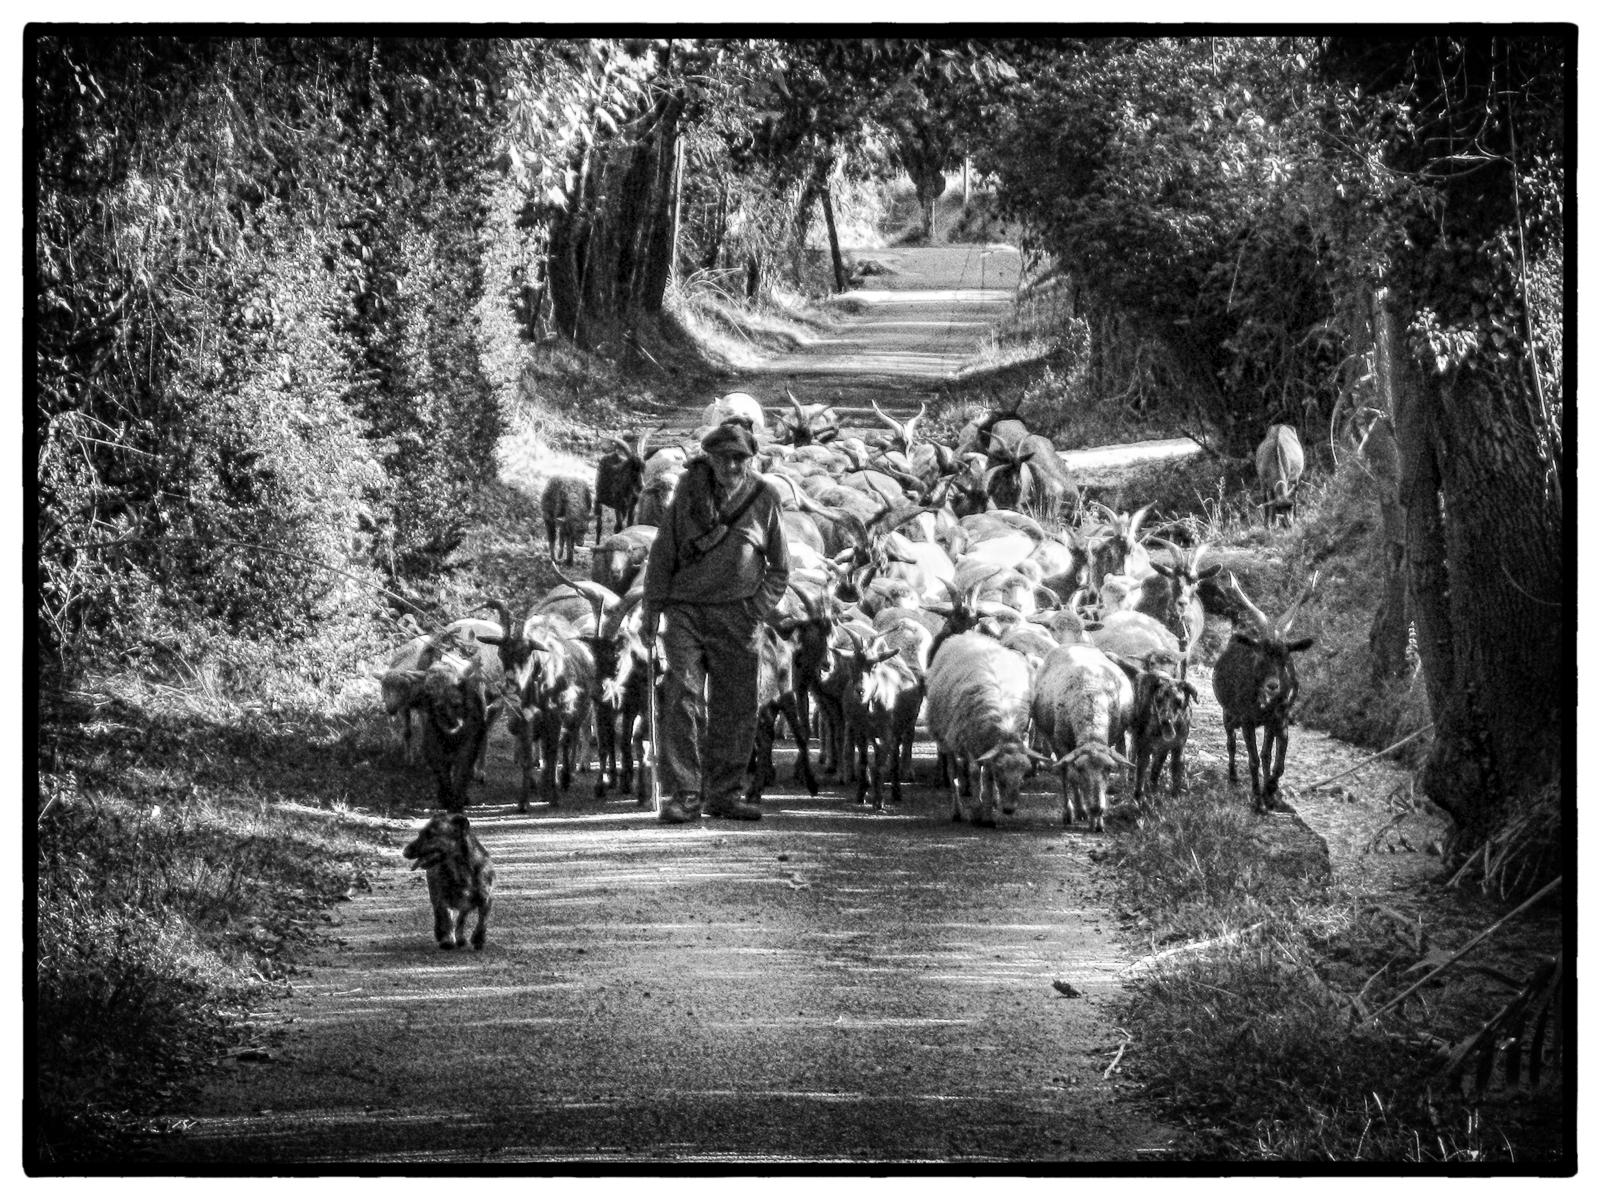 Herding Goats, Provence : street & stories : TIMOTHY FLOYD PHOTOGRAPHER, NATURE PHOTOGRAPHY, PHOTO ESSAYS, PHOTOJOURNALISM